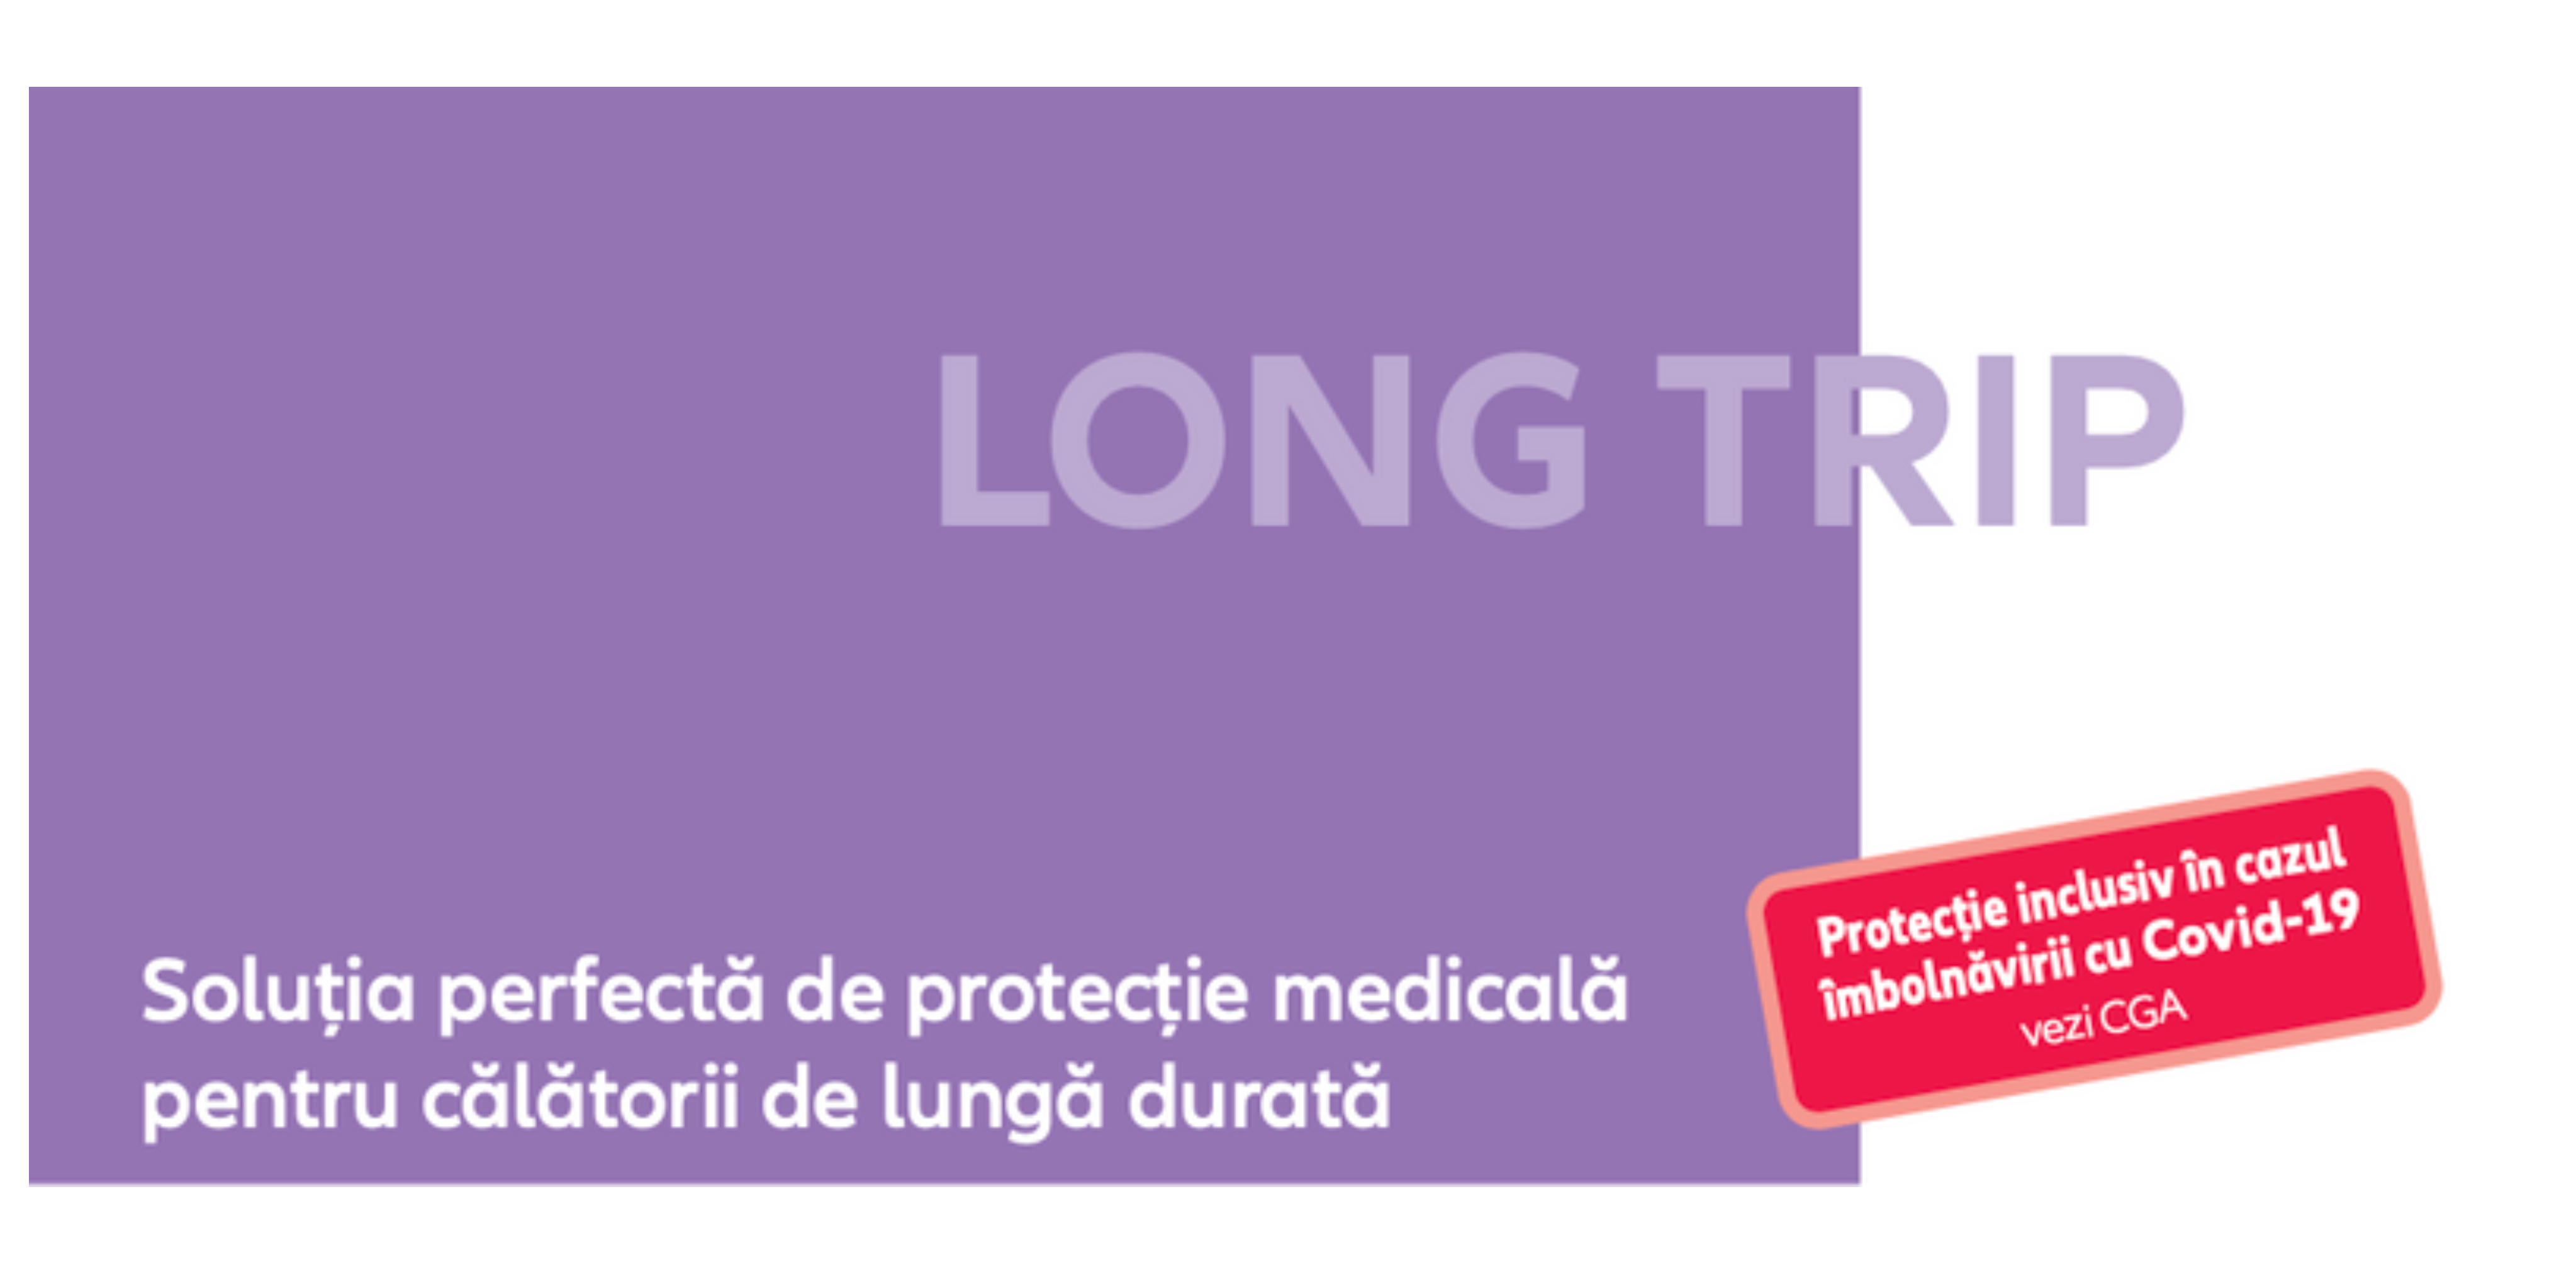 Long_trip_Covid_Protection